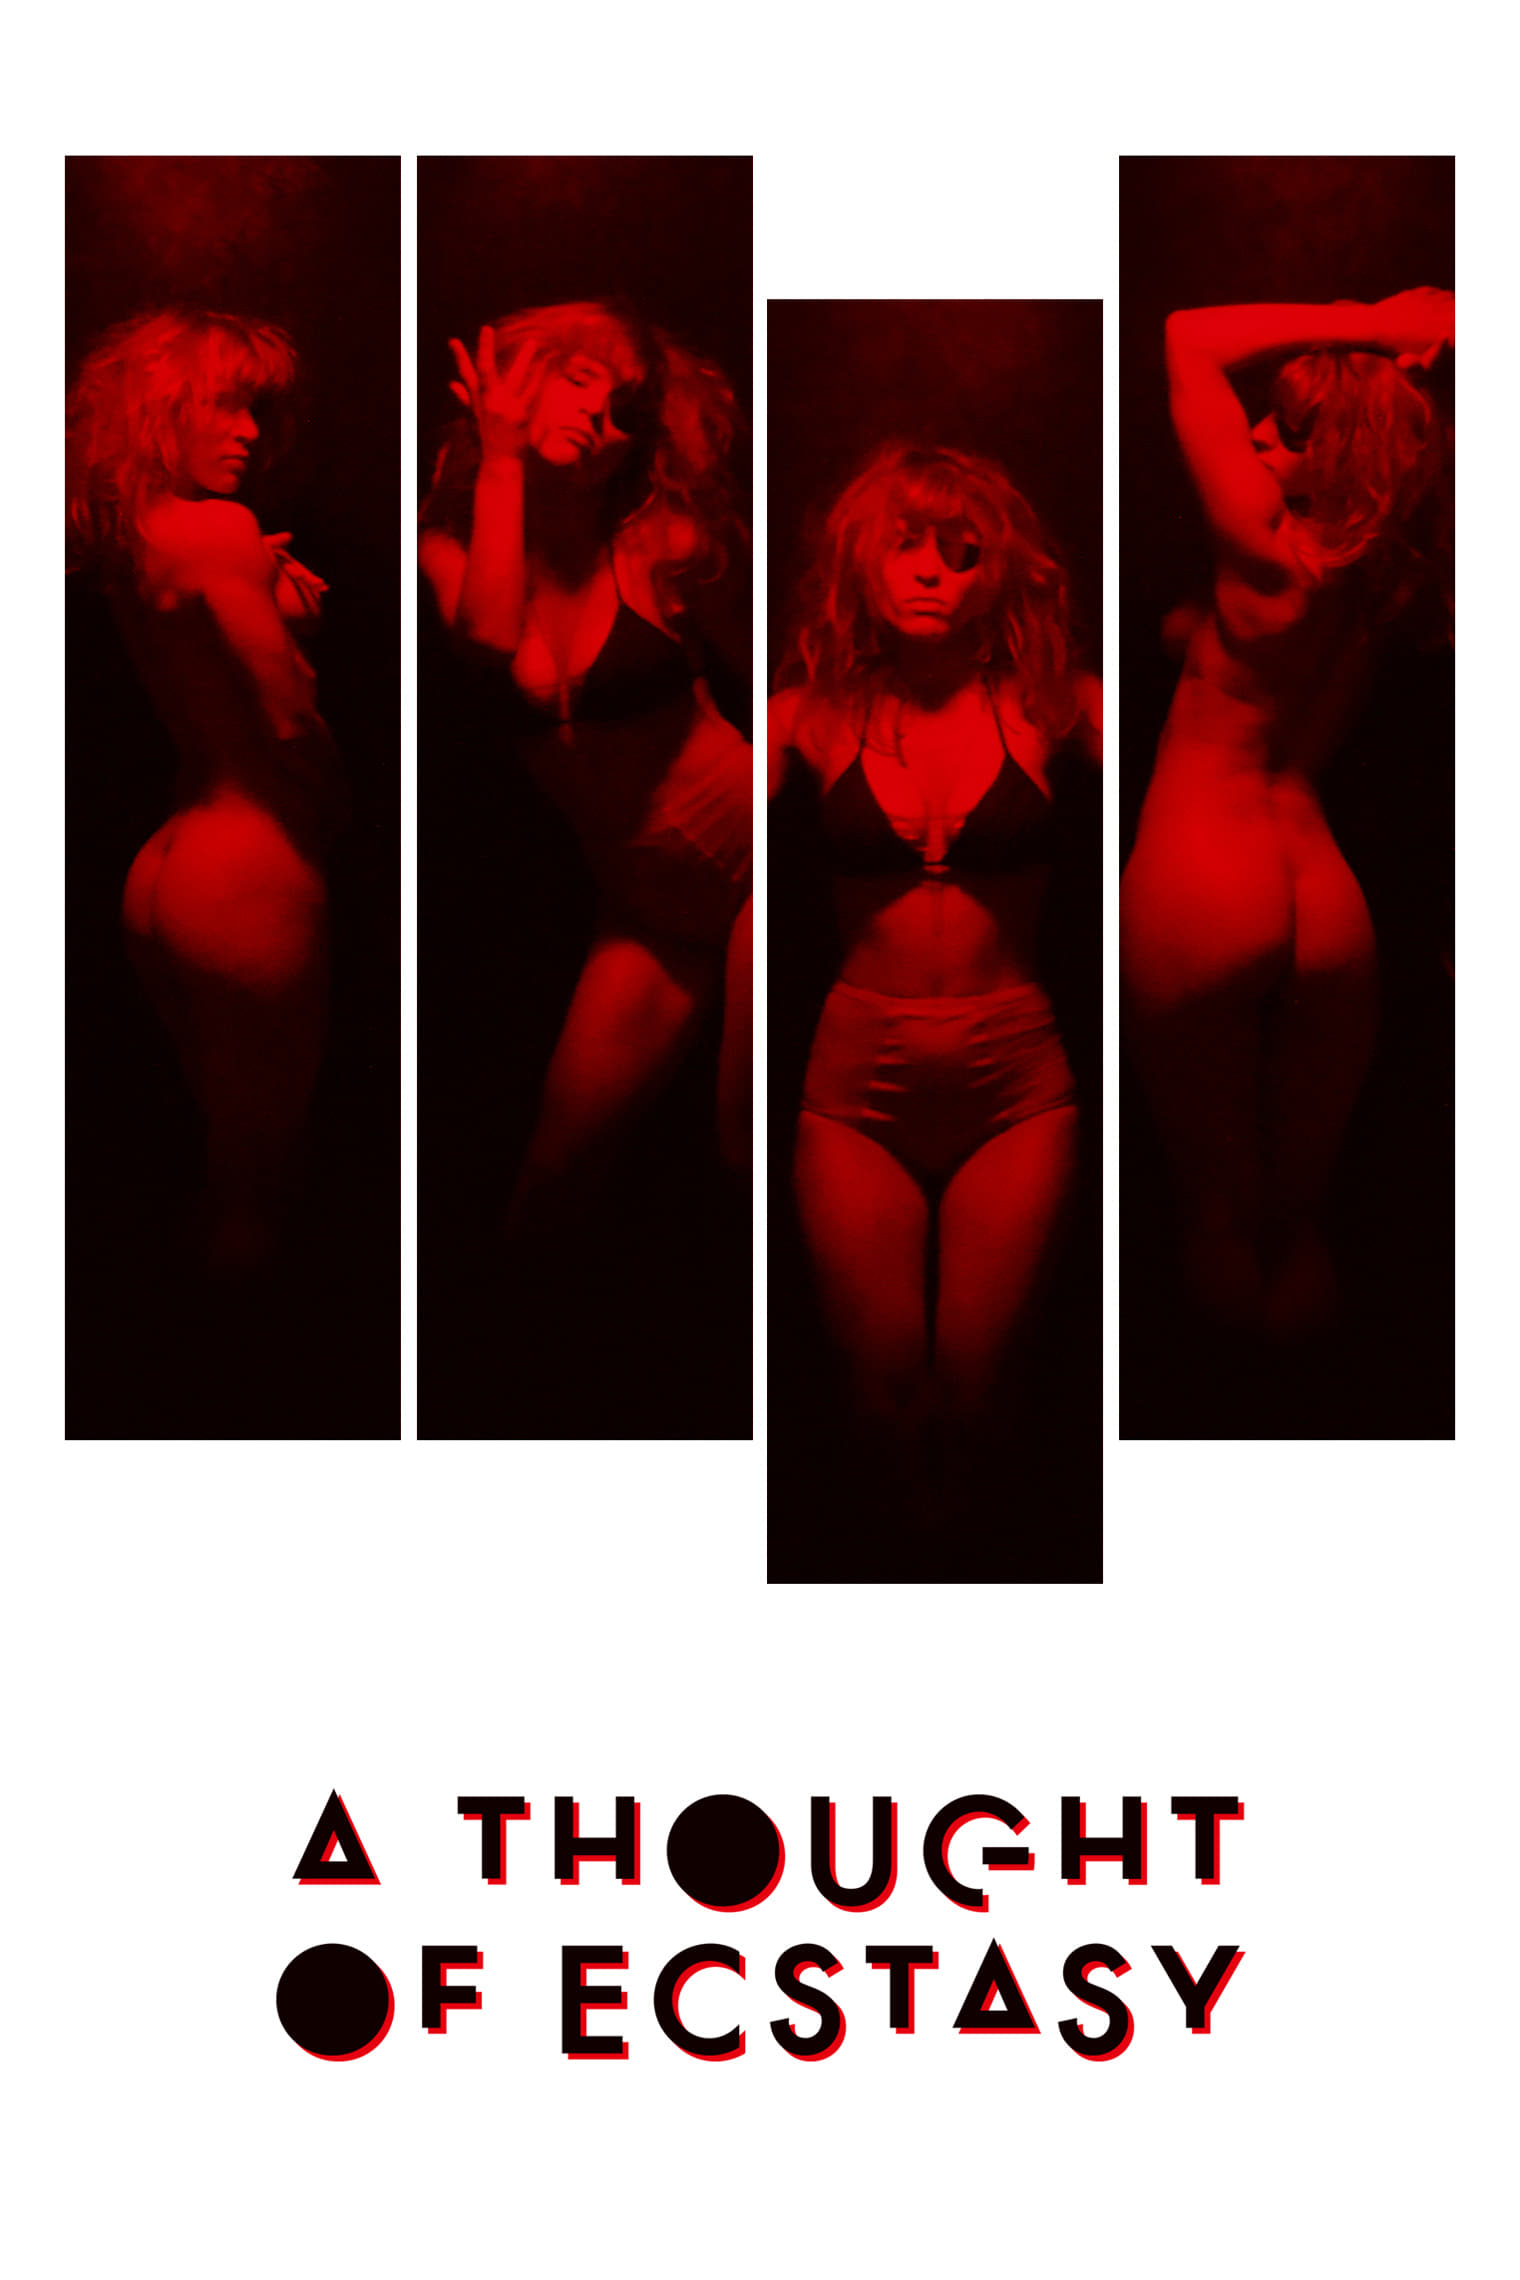 A Thought Of Ecstasy Film